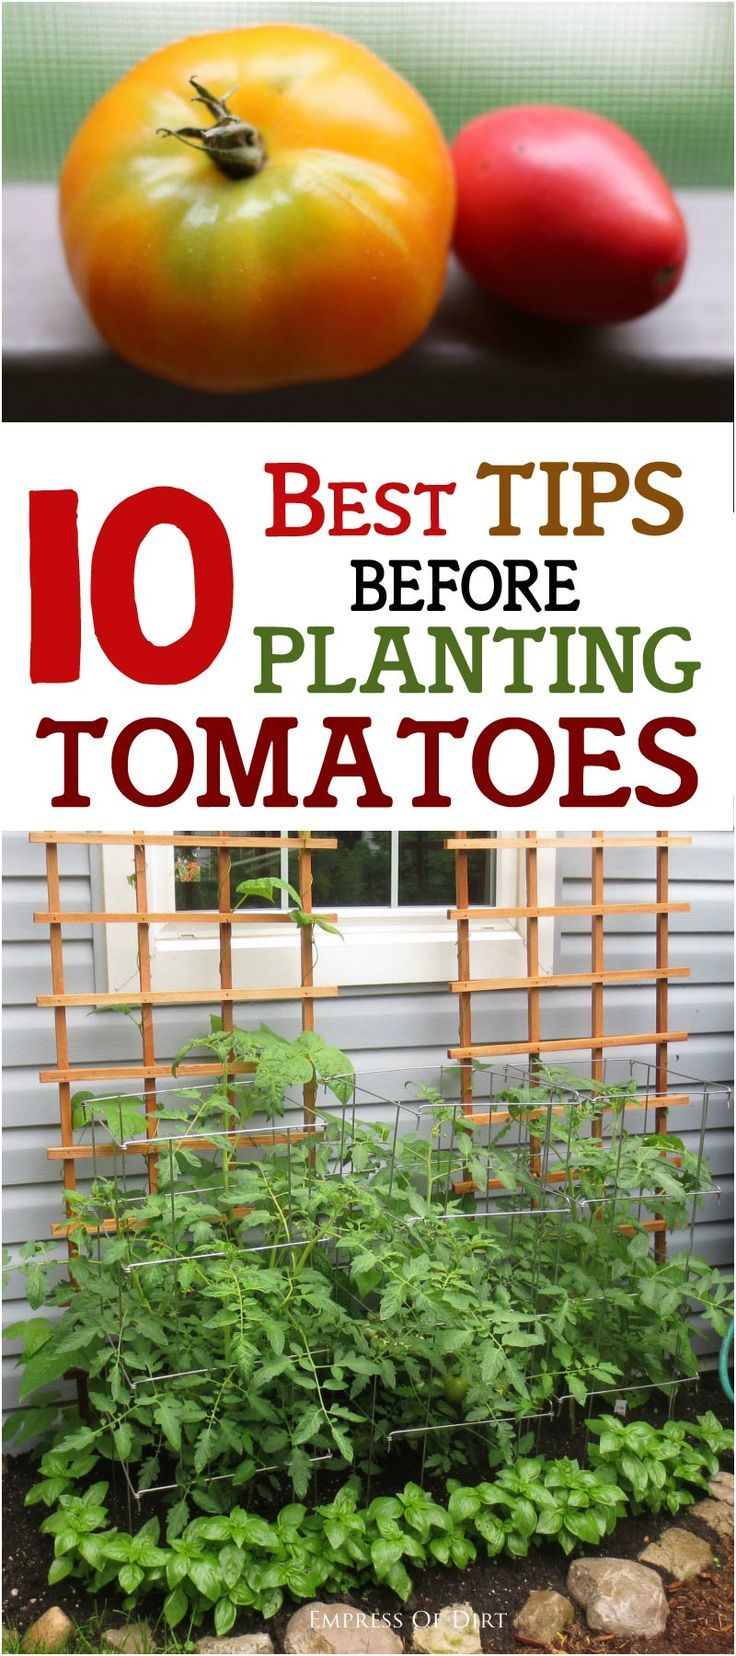 What is the best soil for tomatoes - 25 Best Ideas About Greenhouse Tomatoes On Pinterest Growing Tomato Plants Growing Tomatoes And Tomato Garden